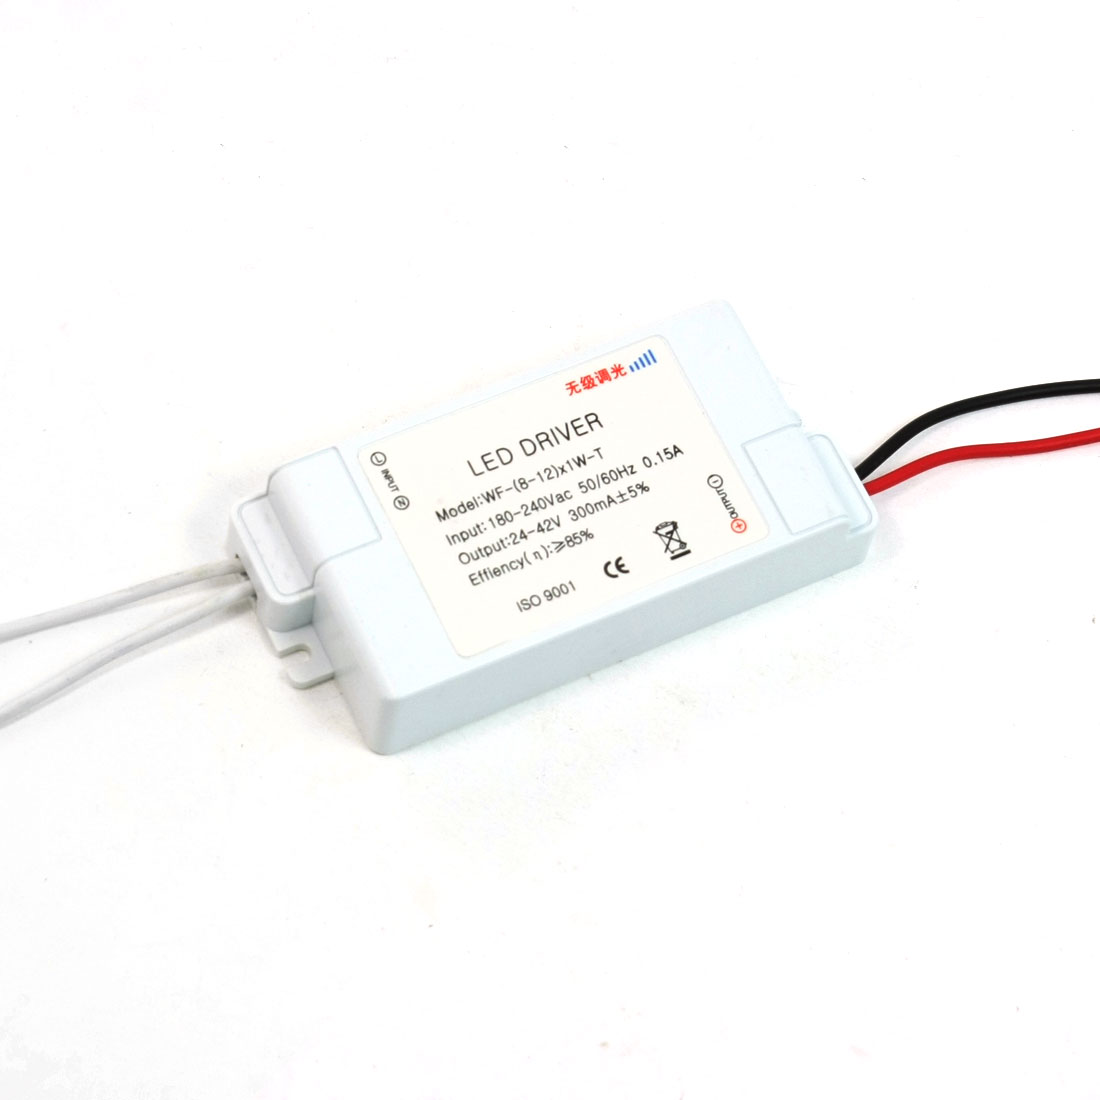 AC 180-240V DC 24-42V Stepless Dimmer Driver Power Supply for (8-12)x1W LED